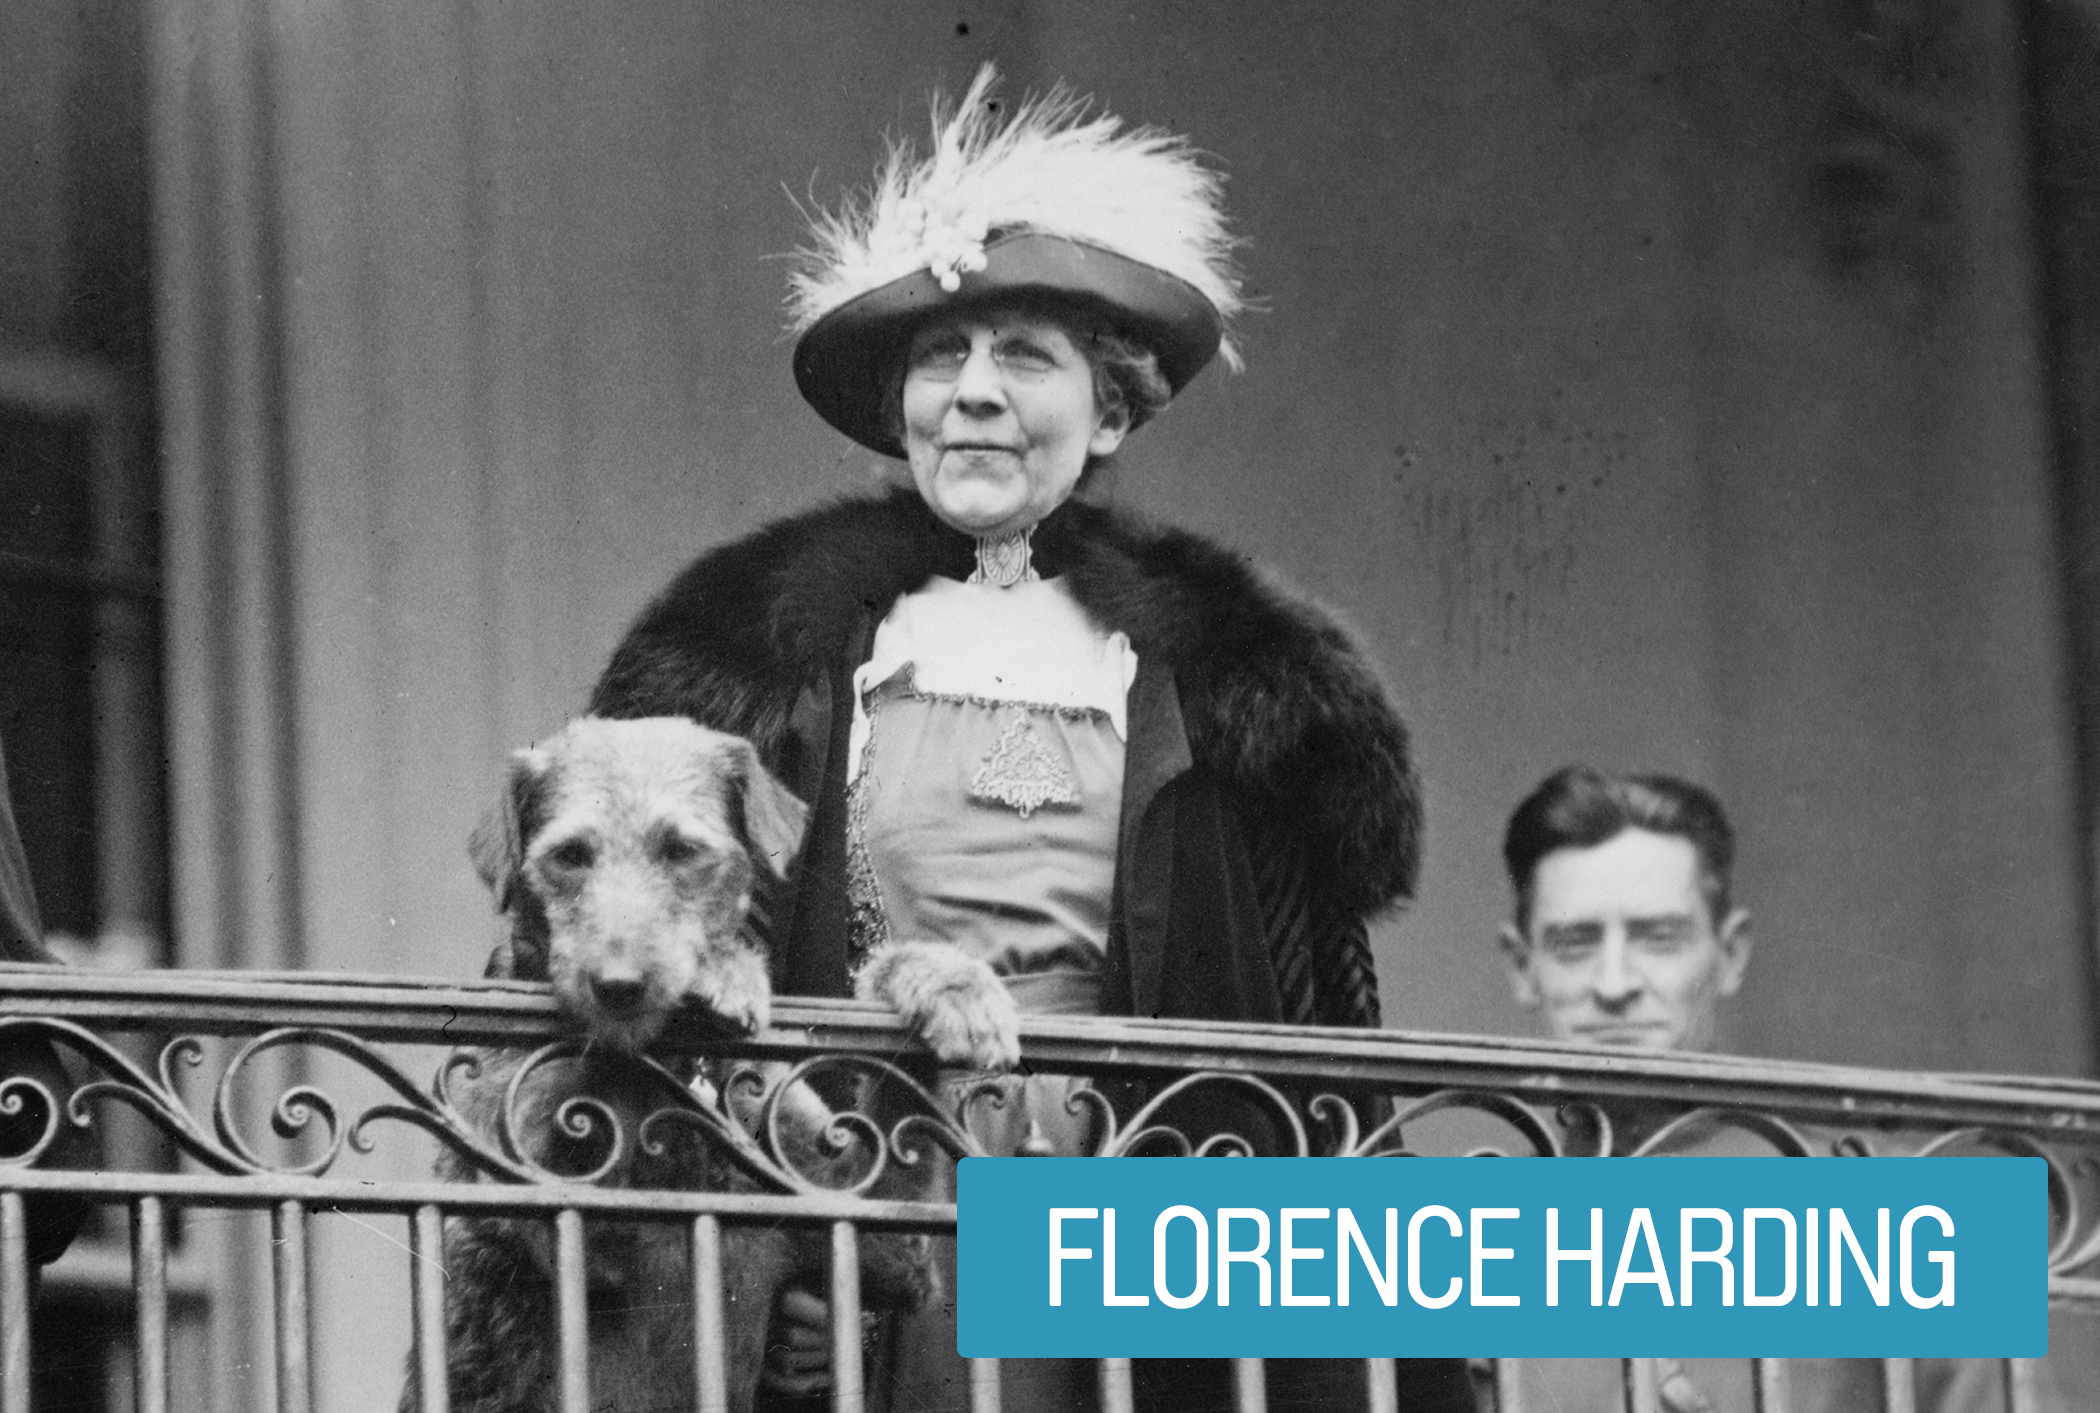 Florence Harding was an advocate for women's equality, acting as a role model  and often pushing for female political appointments. She was a radical supporter of the ASPCA and encouraged the humane treatment of animals. She also routinely visited veteran hospital wards to ensure patients received quality care and proper benefits.